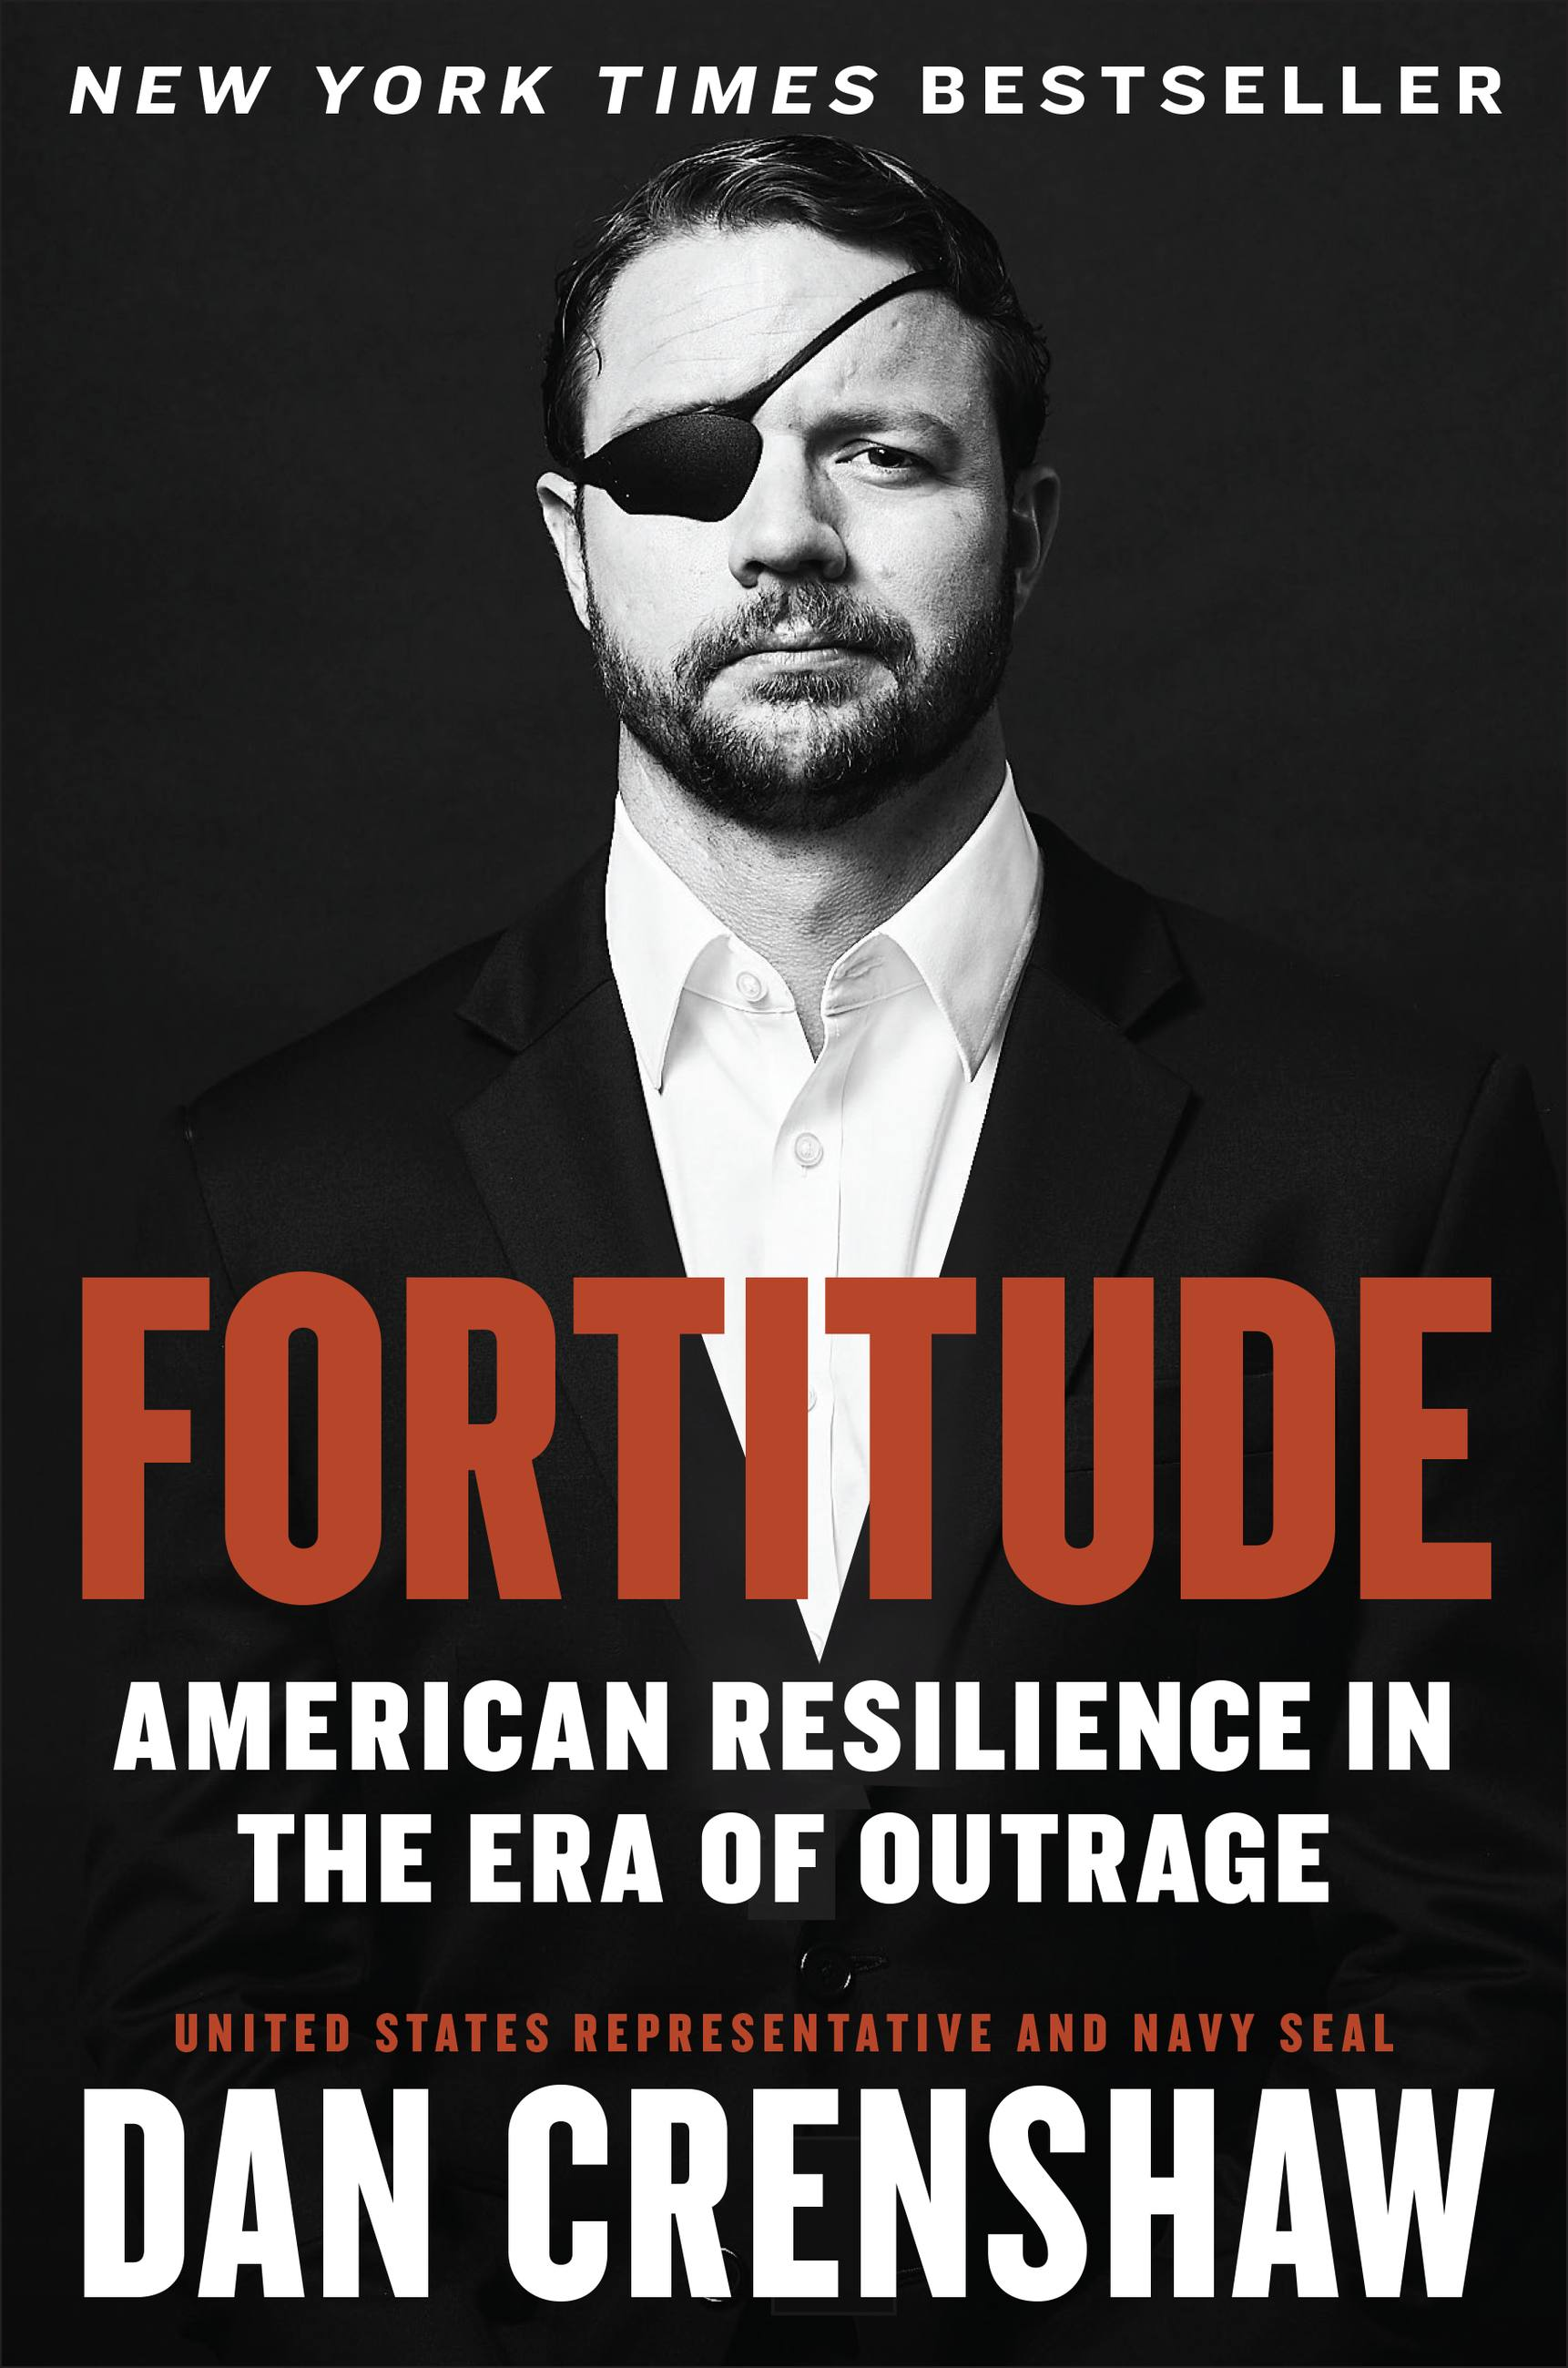 Fortitude American Resilience in the Era of Outrage